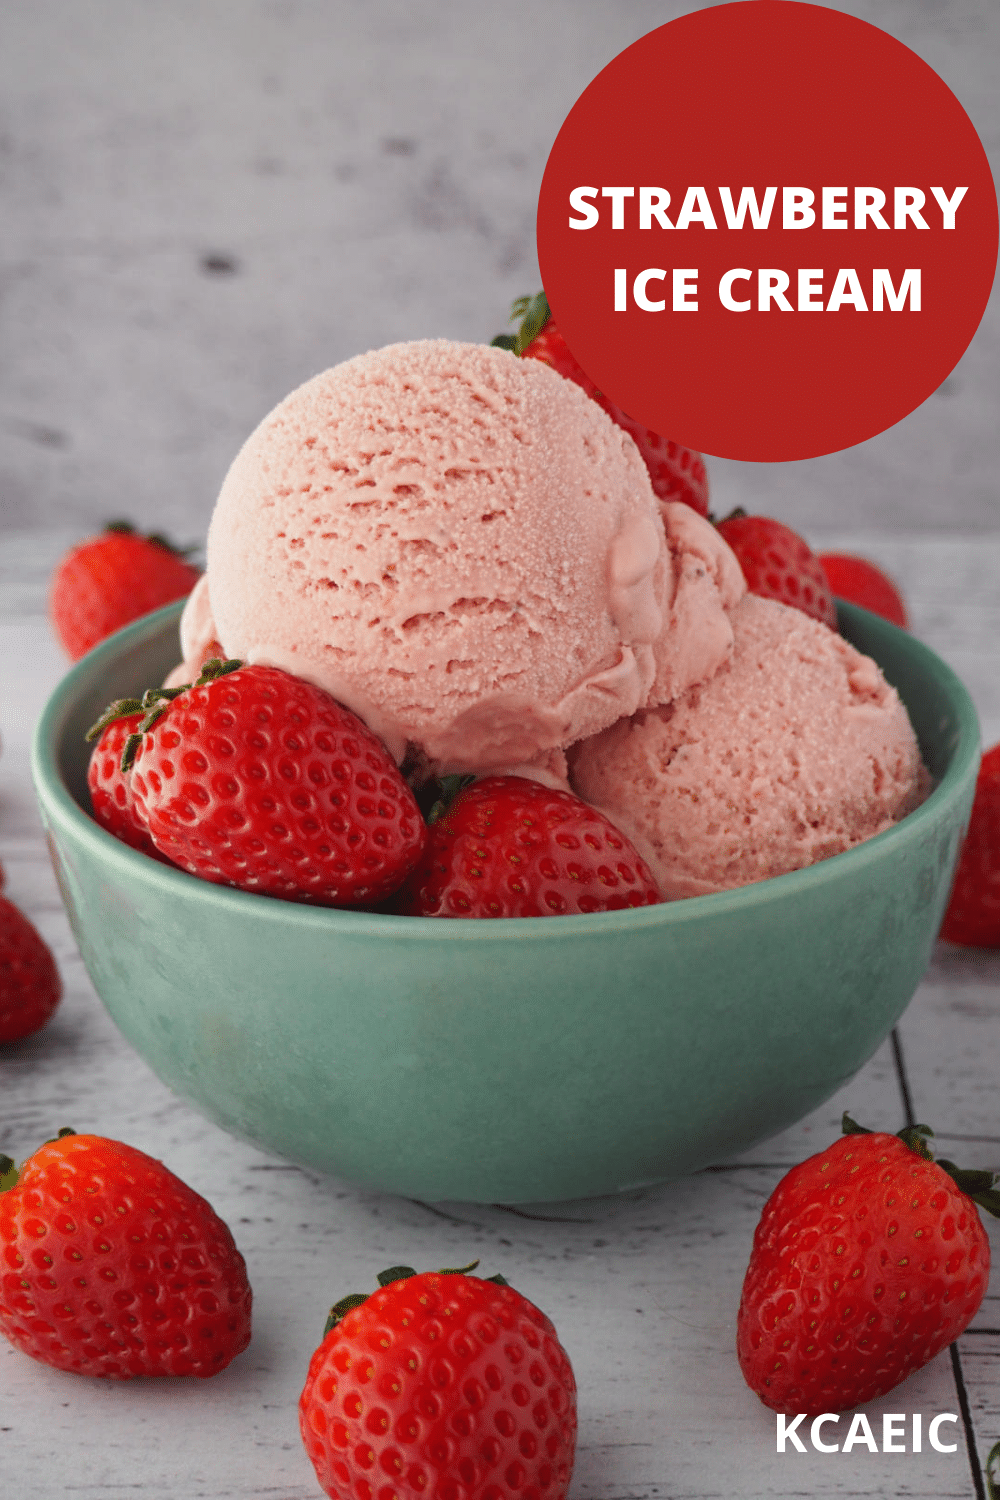 45 degree view of scoops of strawberry ice cream in a green bowl with strawberries in the bowl and strawberries scattered around it, on a white background, with text overlay, strawberry ice cream and KCAEIC.